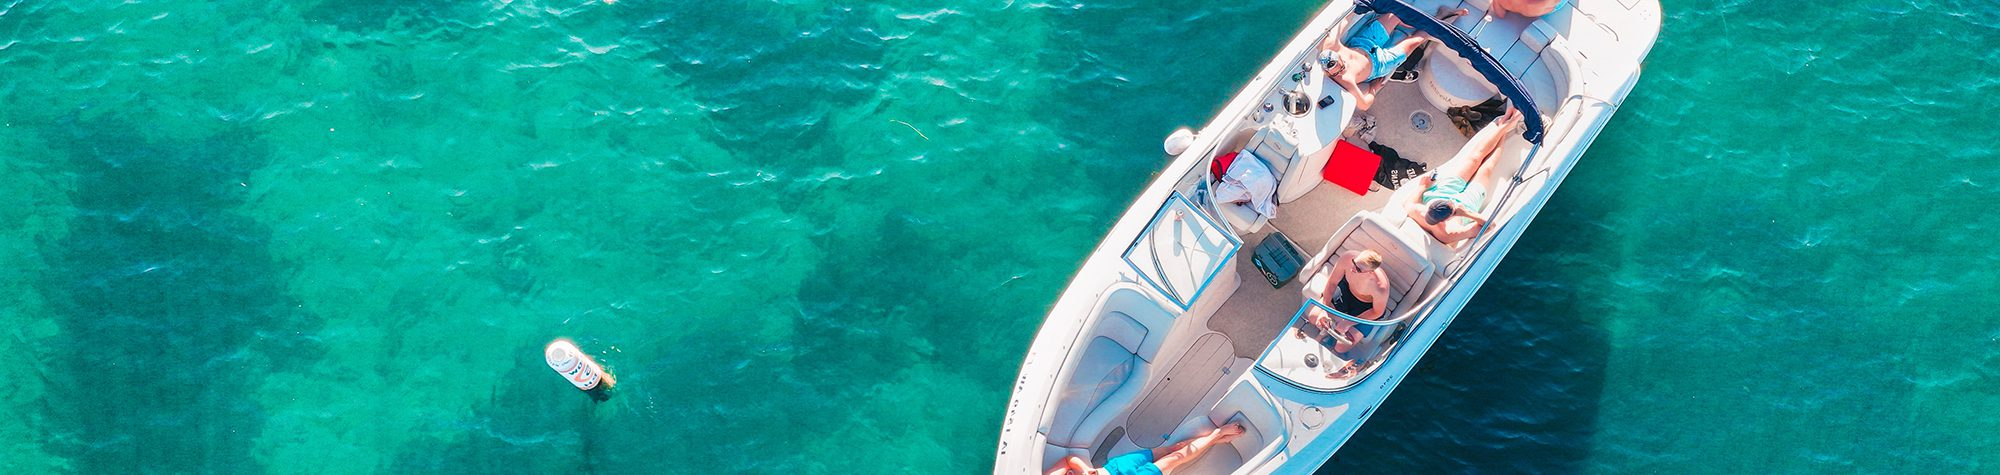 Top 5 summer insurance claims and how to avoid them